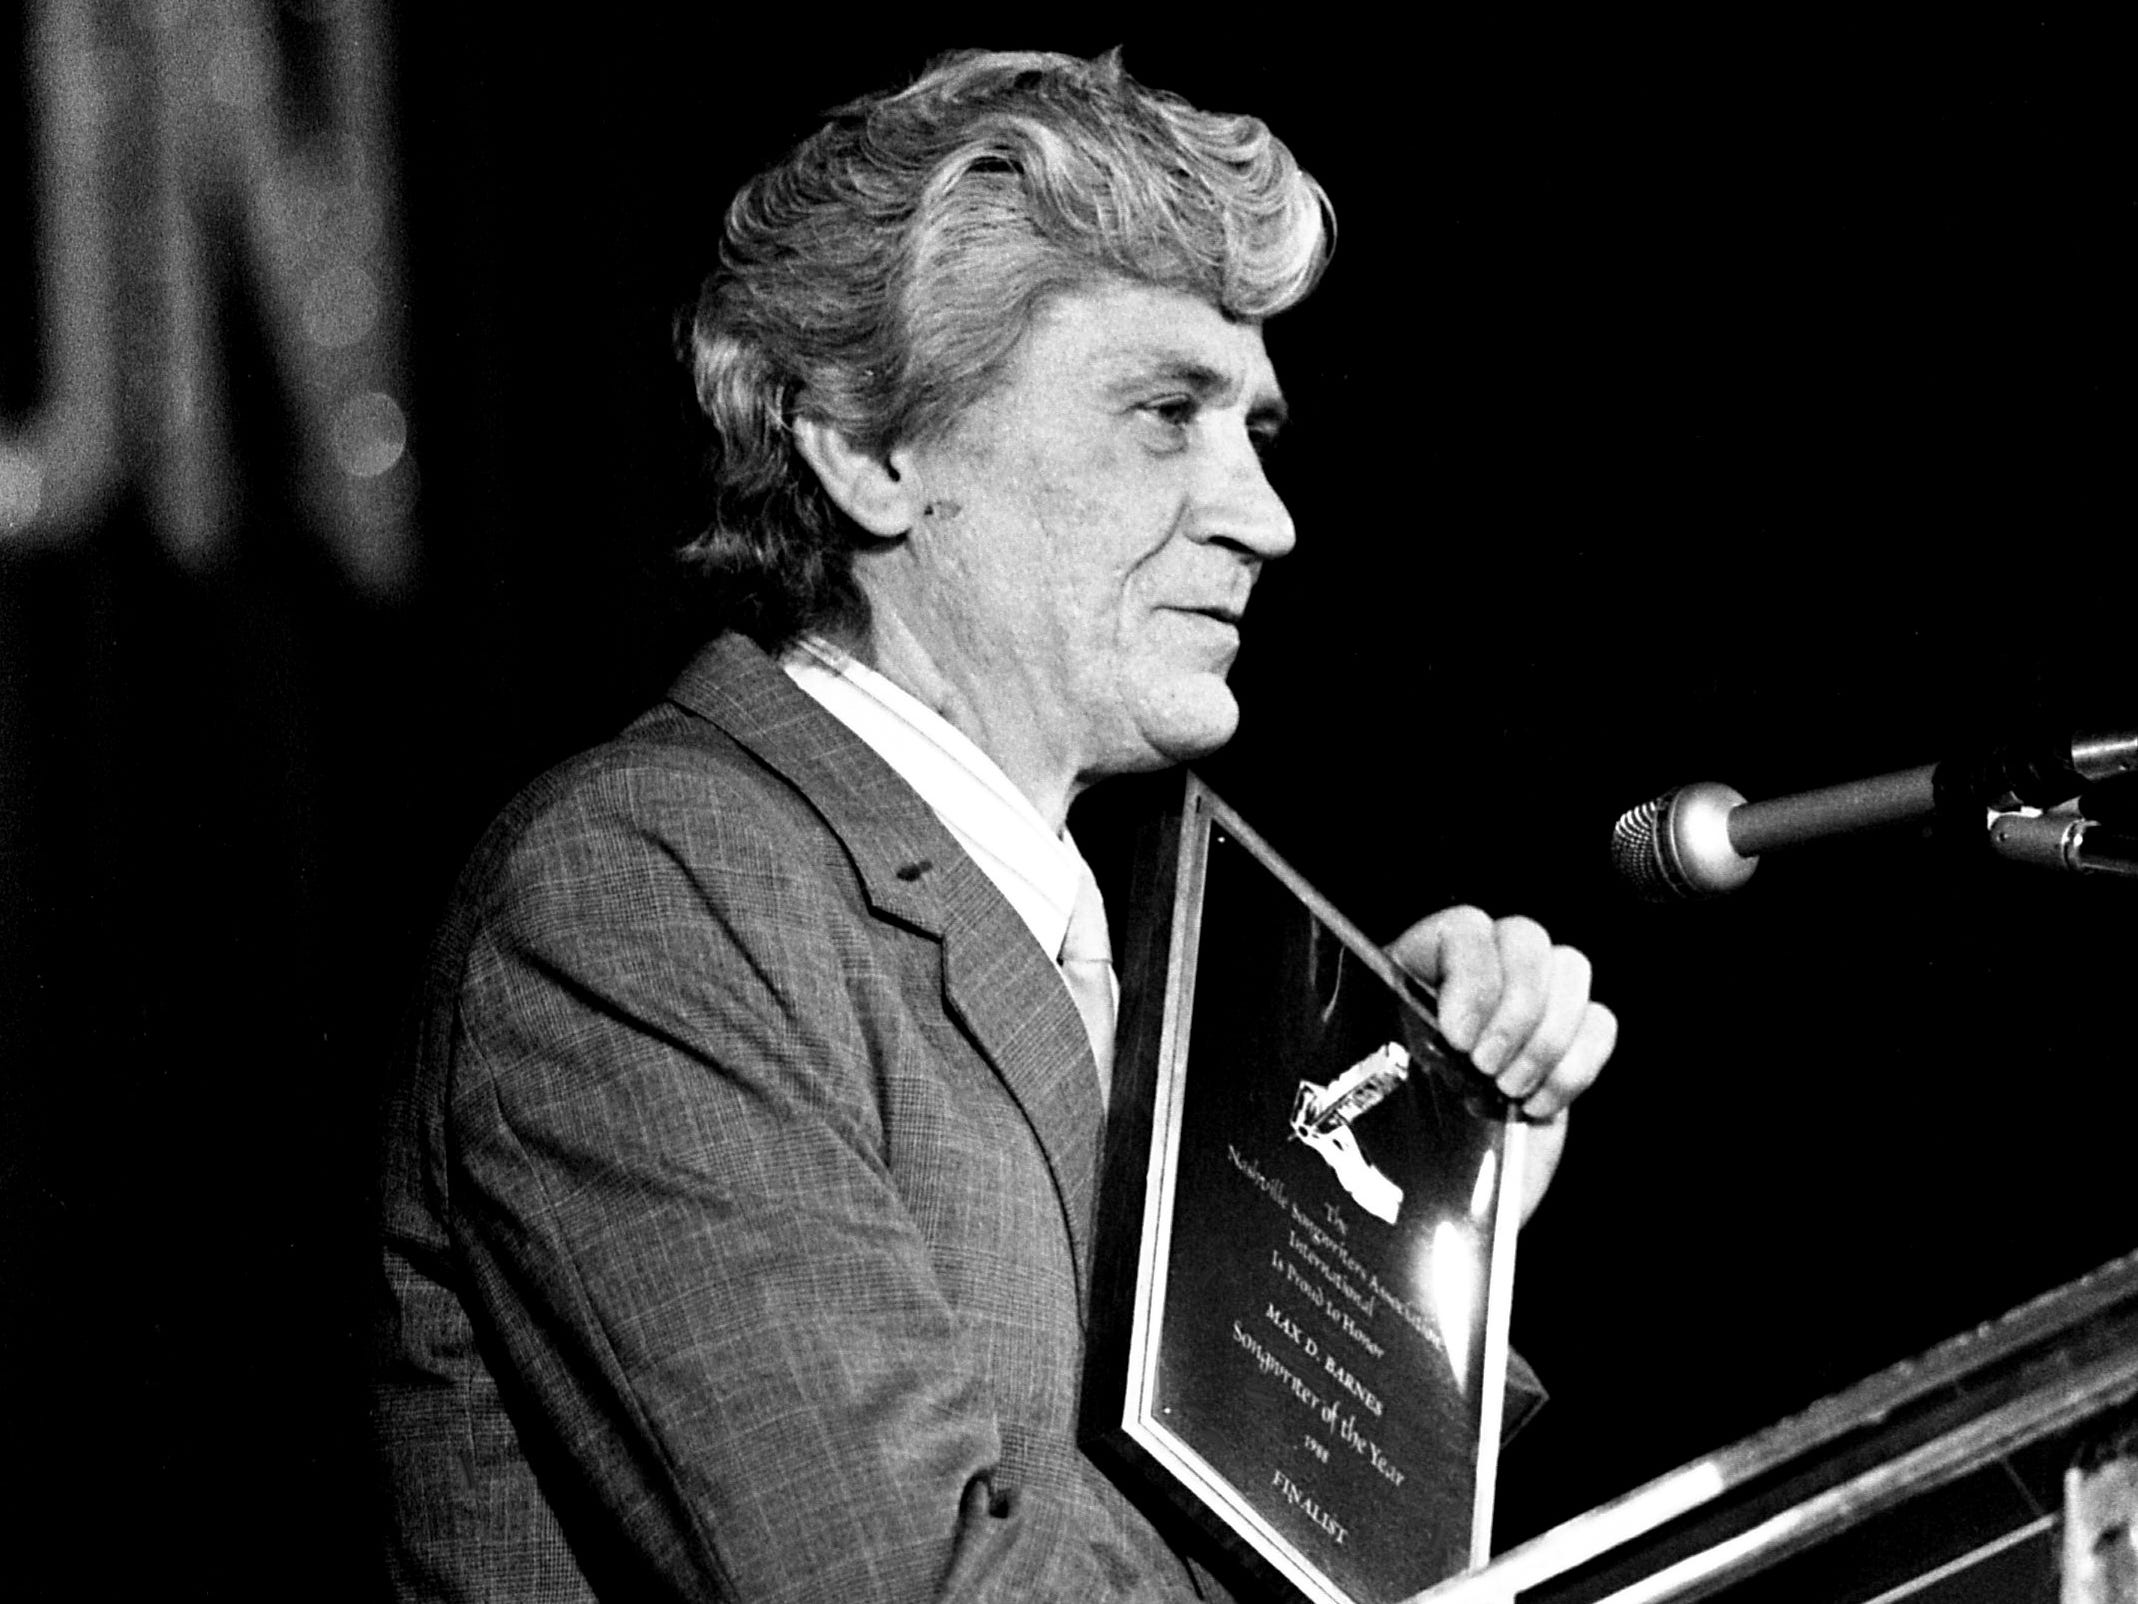 "Songwriter Max D. Barnes shows off the Song of the Year award he won for ""Chiseled in Stone"" during the Nashville Songwriters Association Songwriter Achievement Awards show at Vanderbilt Plaza on Feb. 19, 1989. The song was co-written by Vern Gosdin."